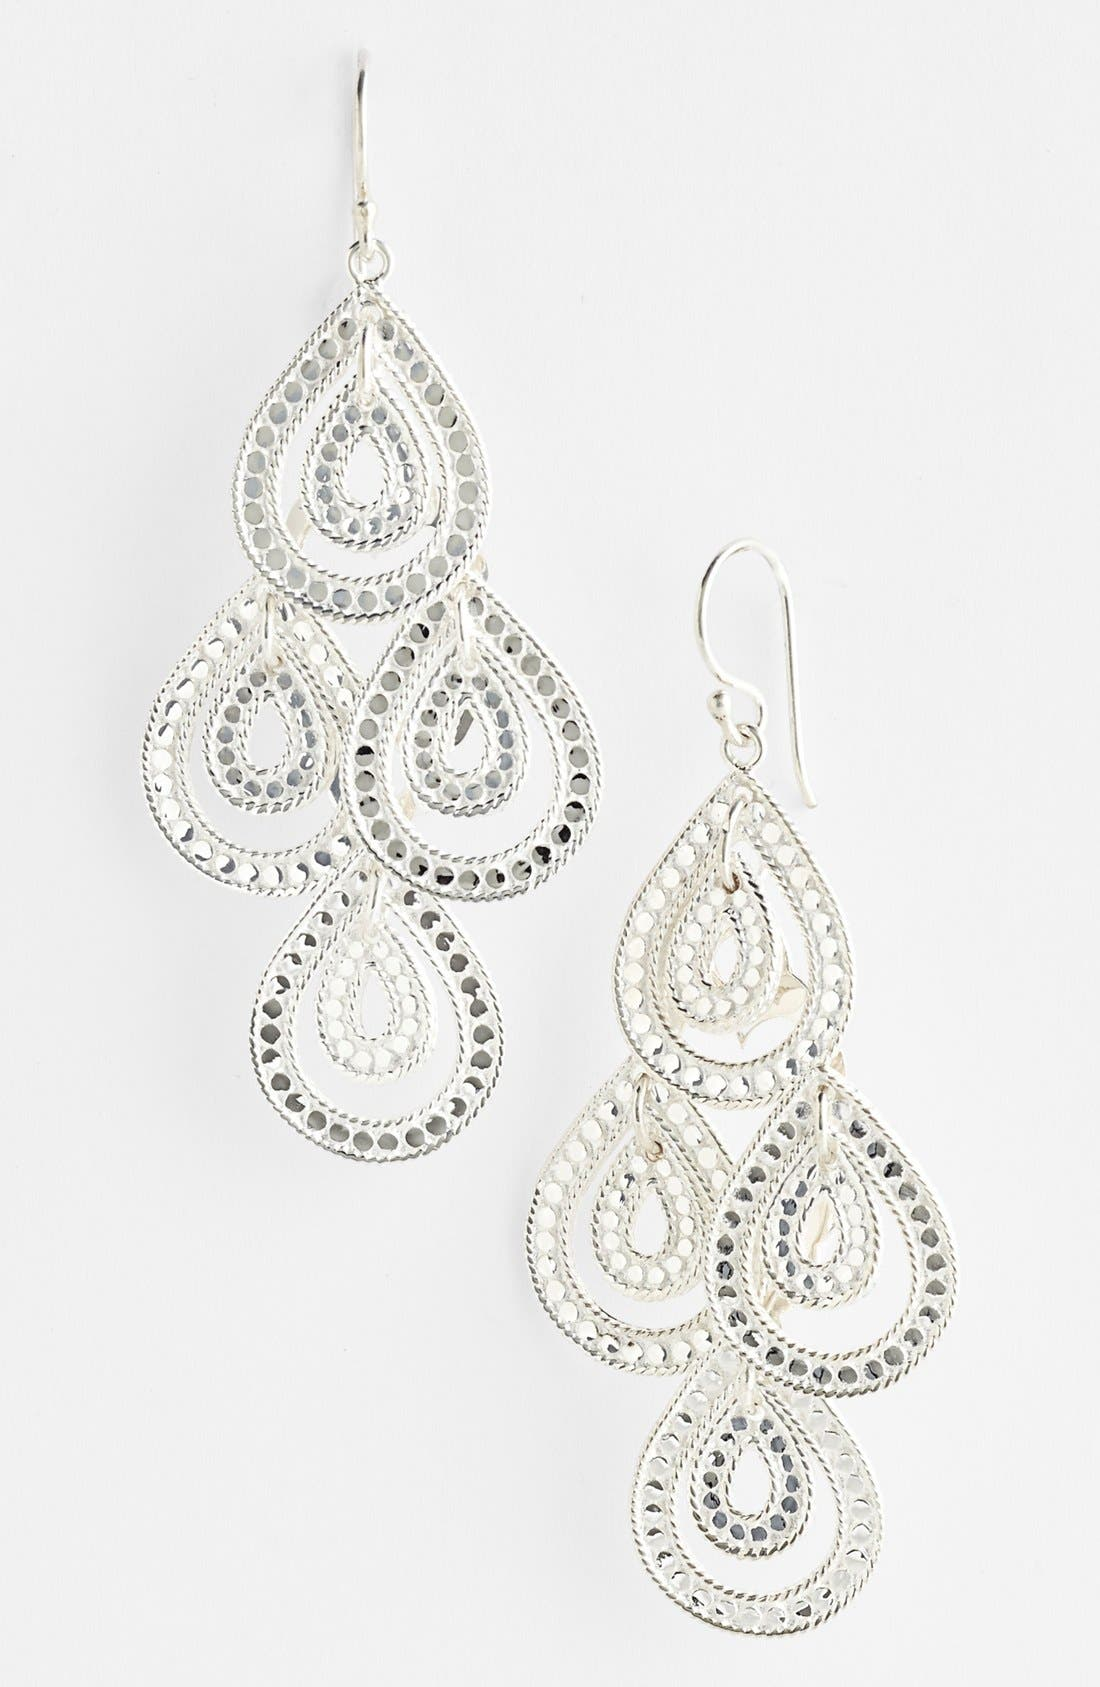 Alternate Image 1 Selected - Anna Beck 'Sulawesi' Double Teardrop Chandelier Earrings